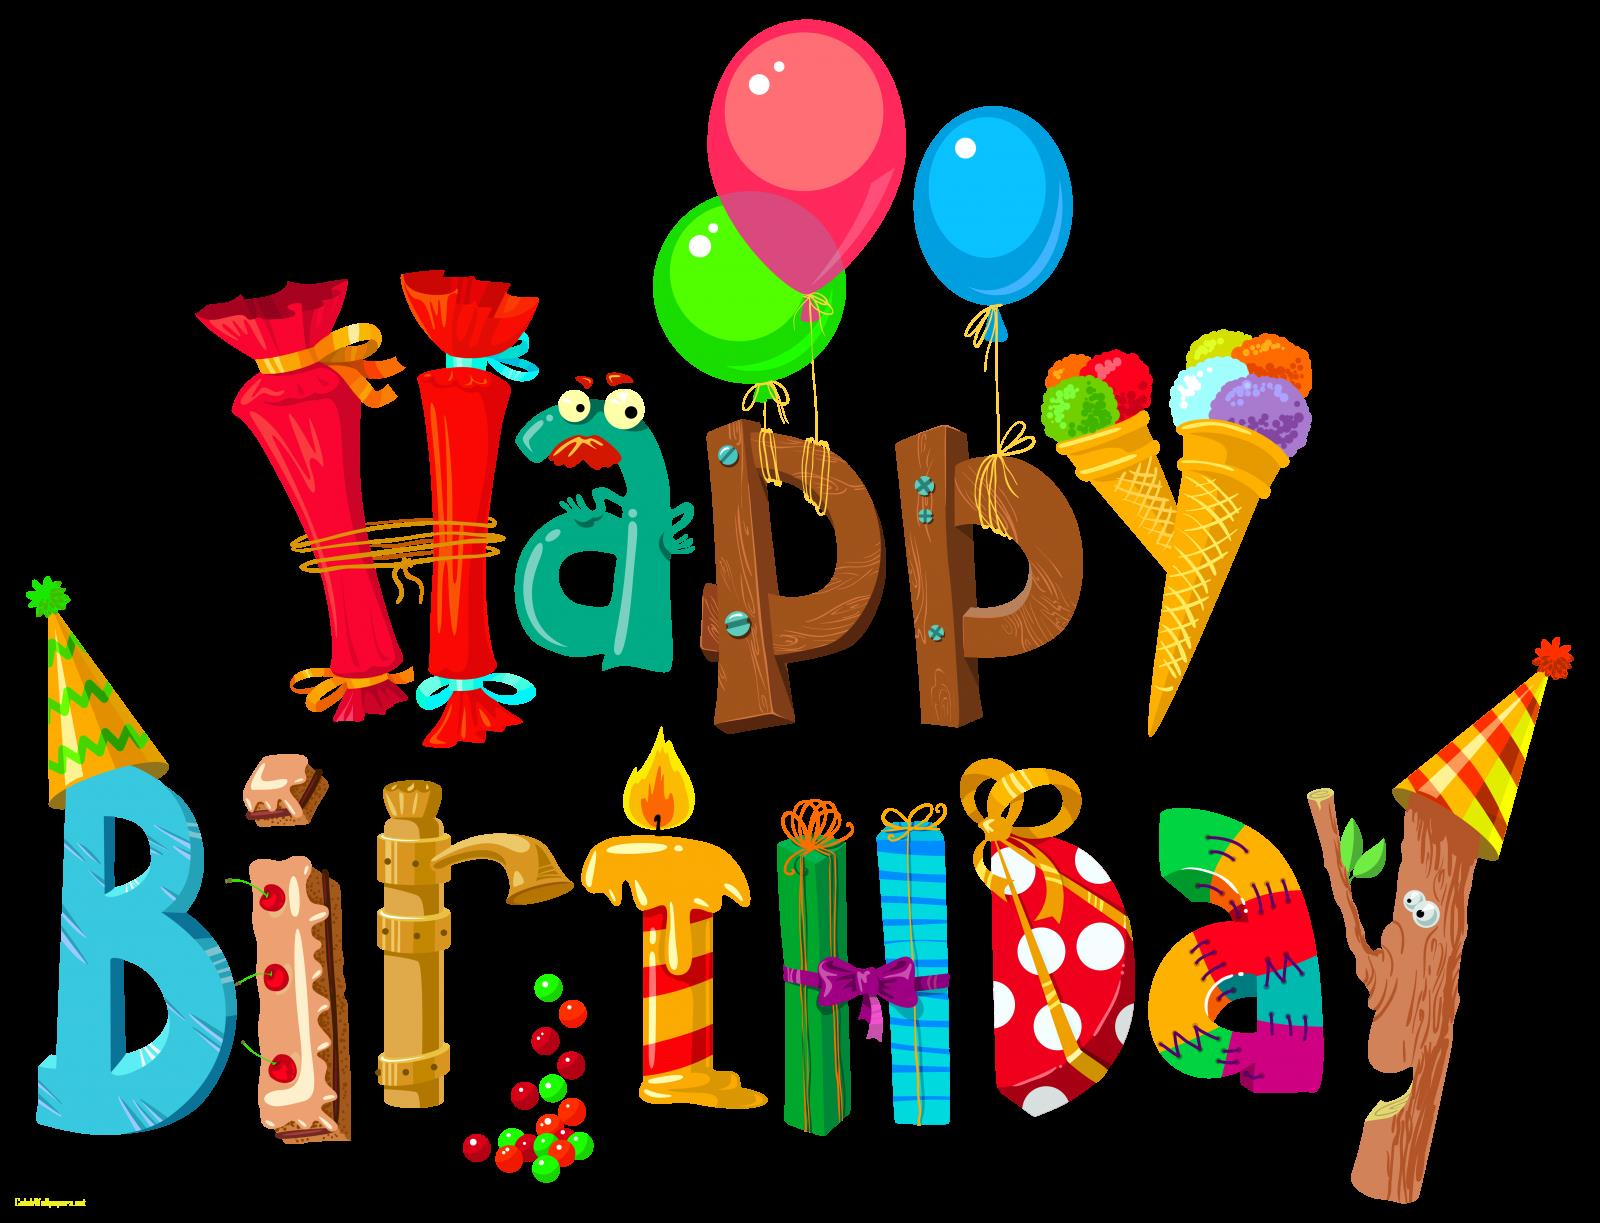 happy birthday wishes clipart ; happy-bday-image-happy-birthday-wishes-clipart-clipartxtras-of-happy-bday-image